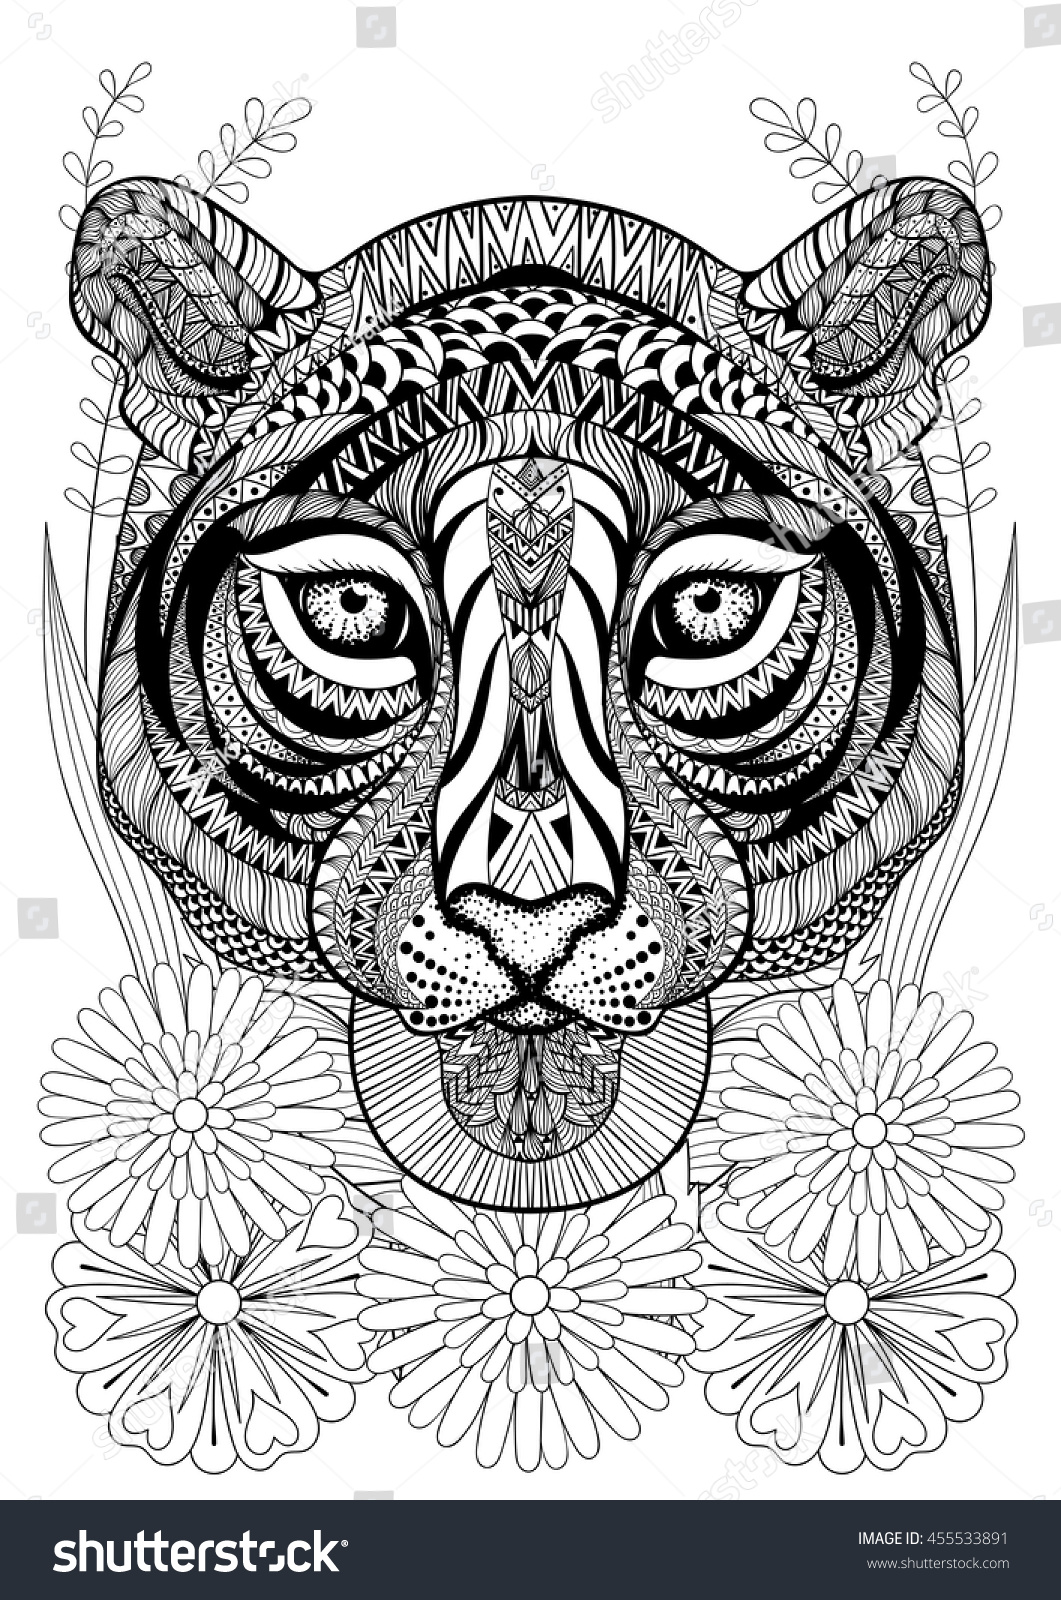 zentangle stylized tiger face on flowers hand drawn ethnic animal for adult coloring pages - Art Therapy Coloring Pages Animals